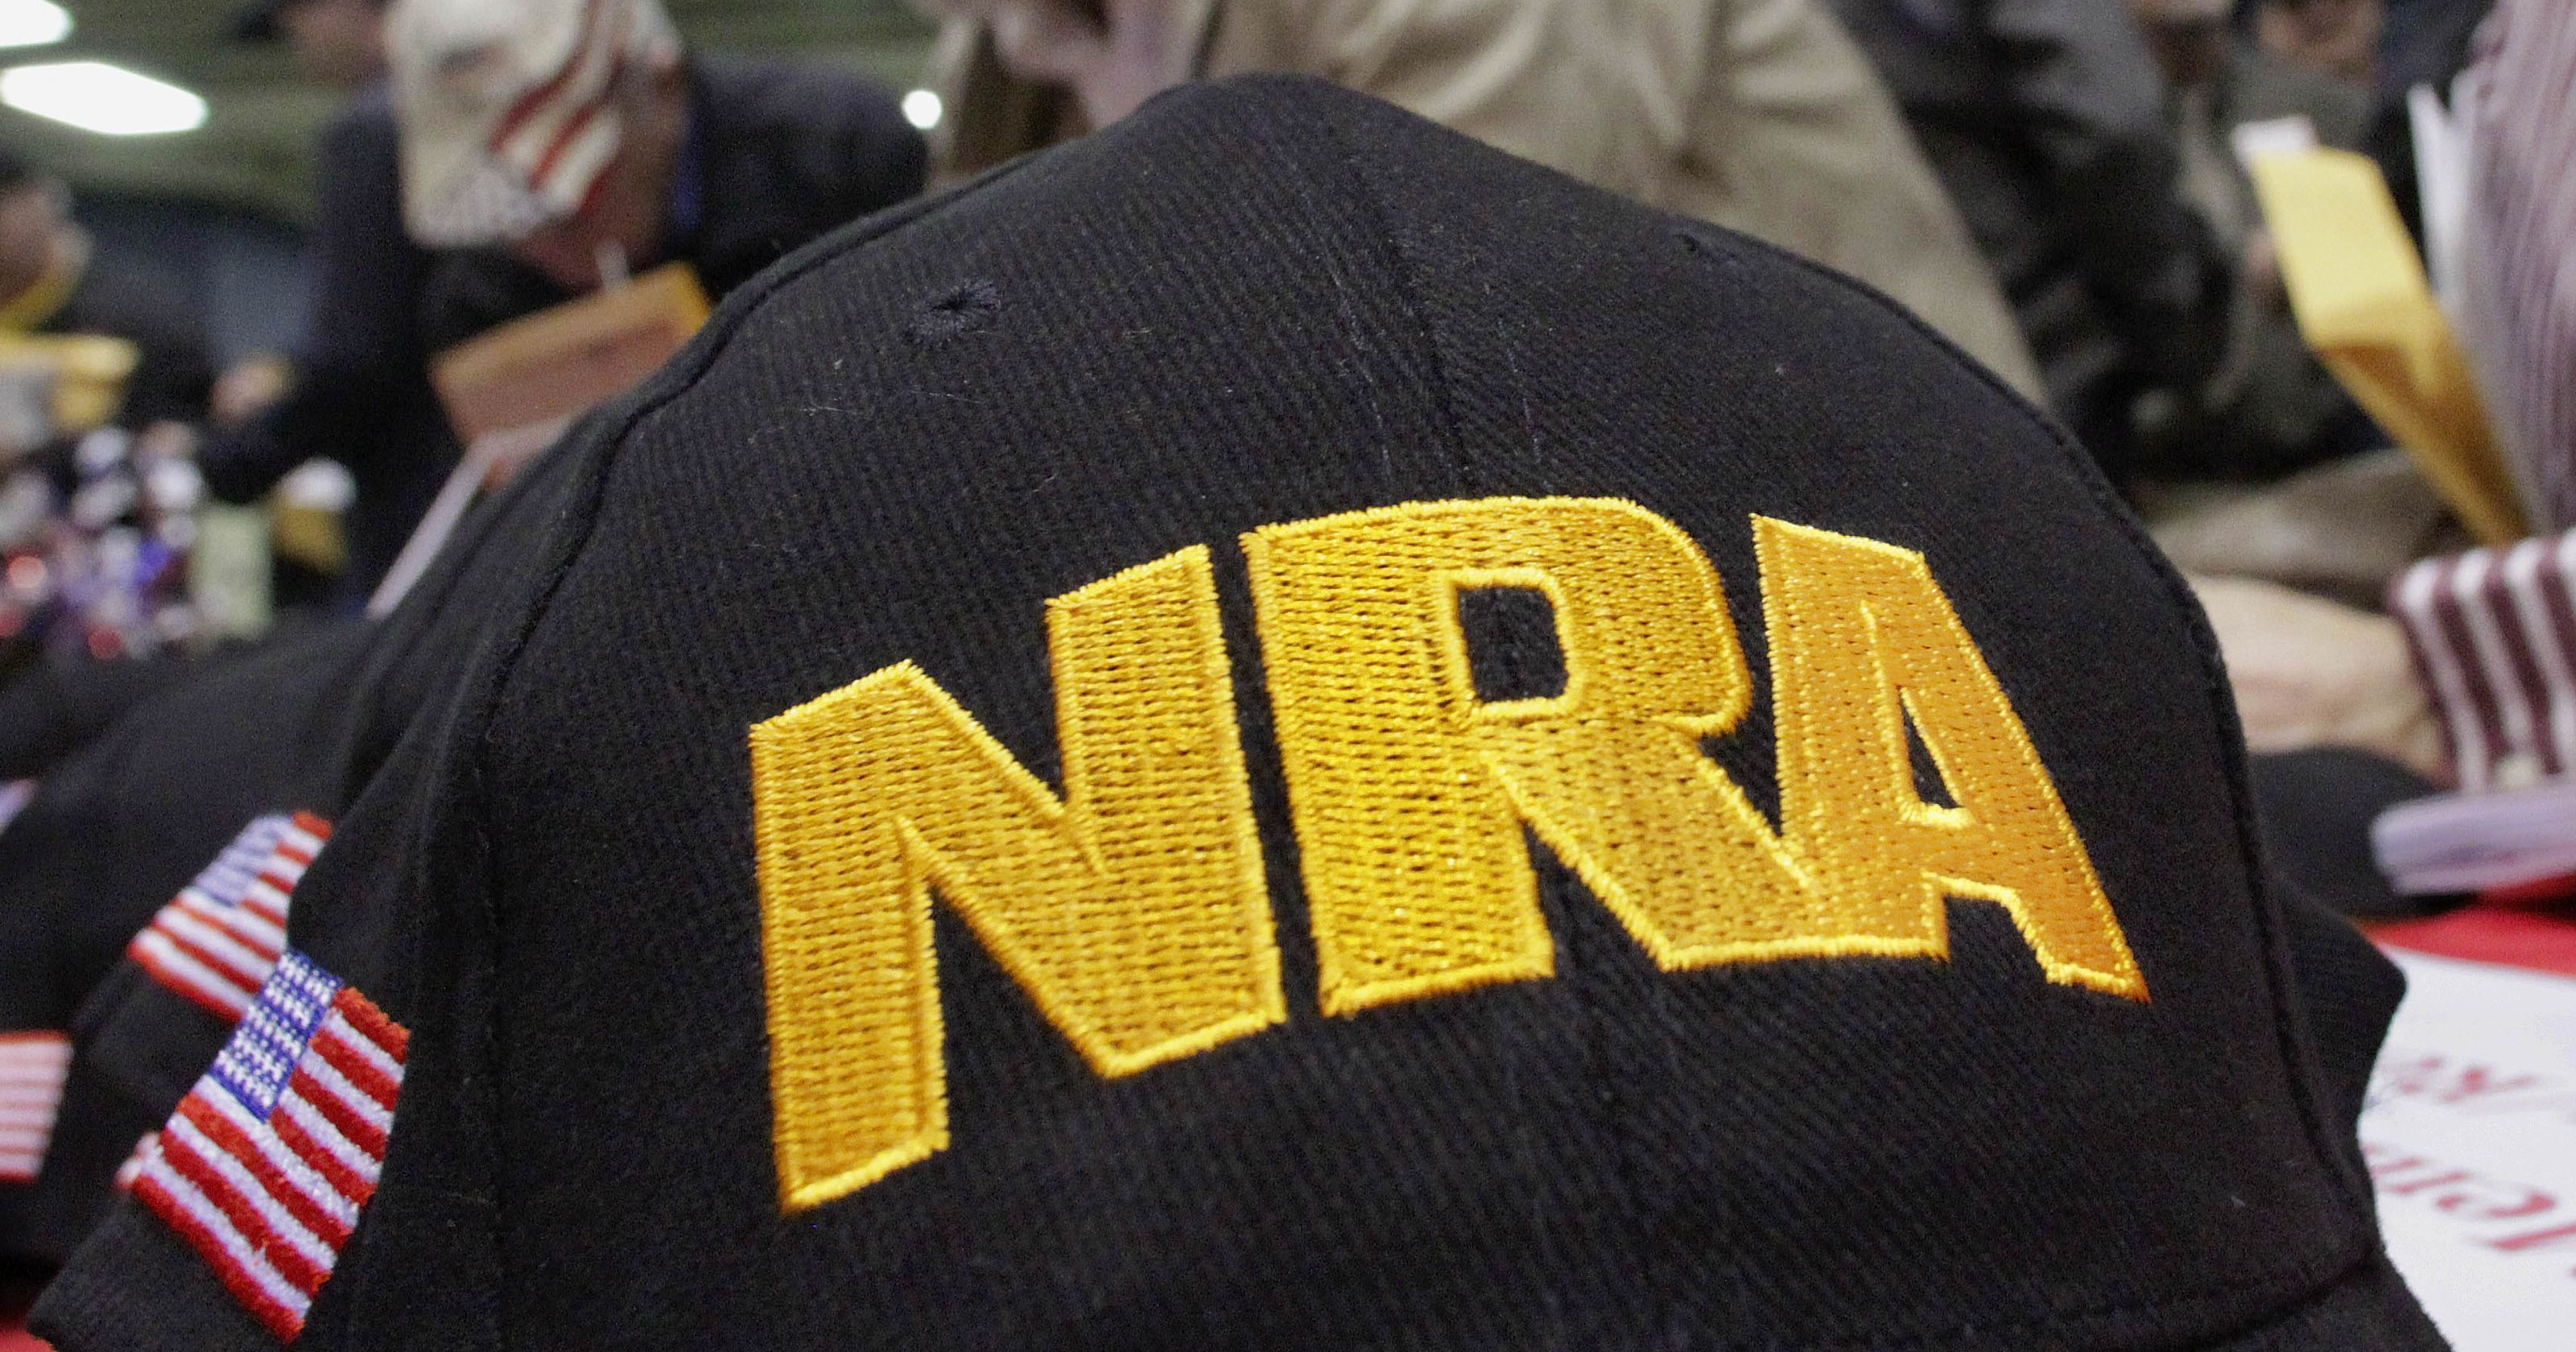 Pin on Violence, Corruption, SHOOTINGS, PROTESTS, Gun Control